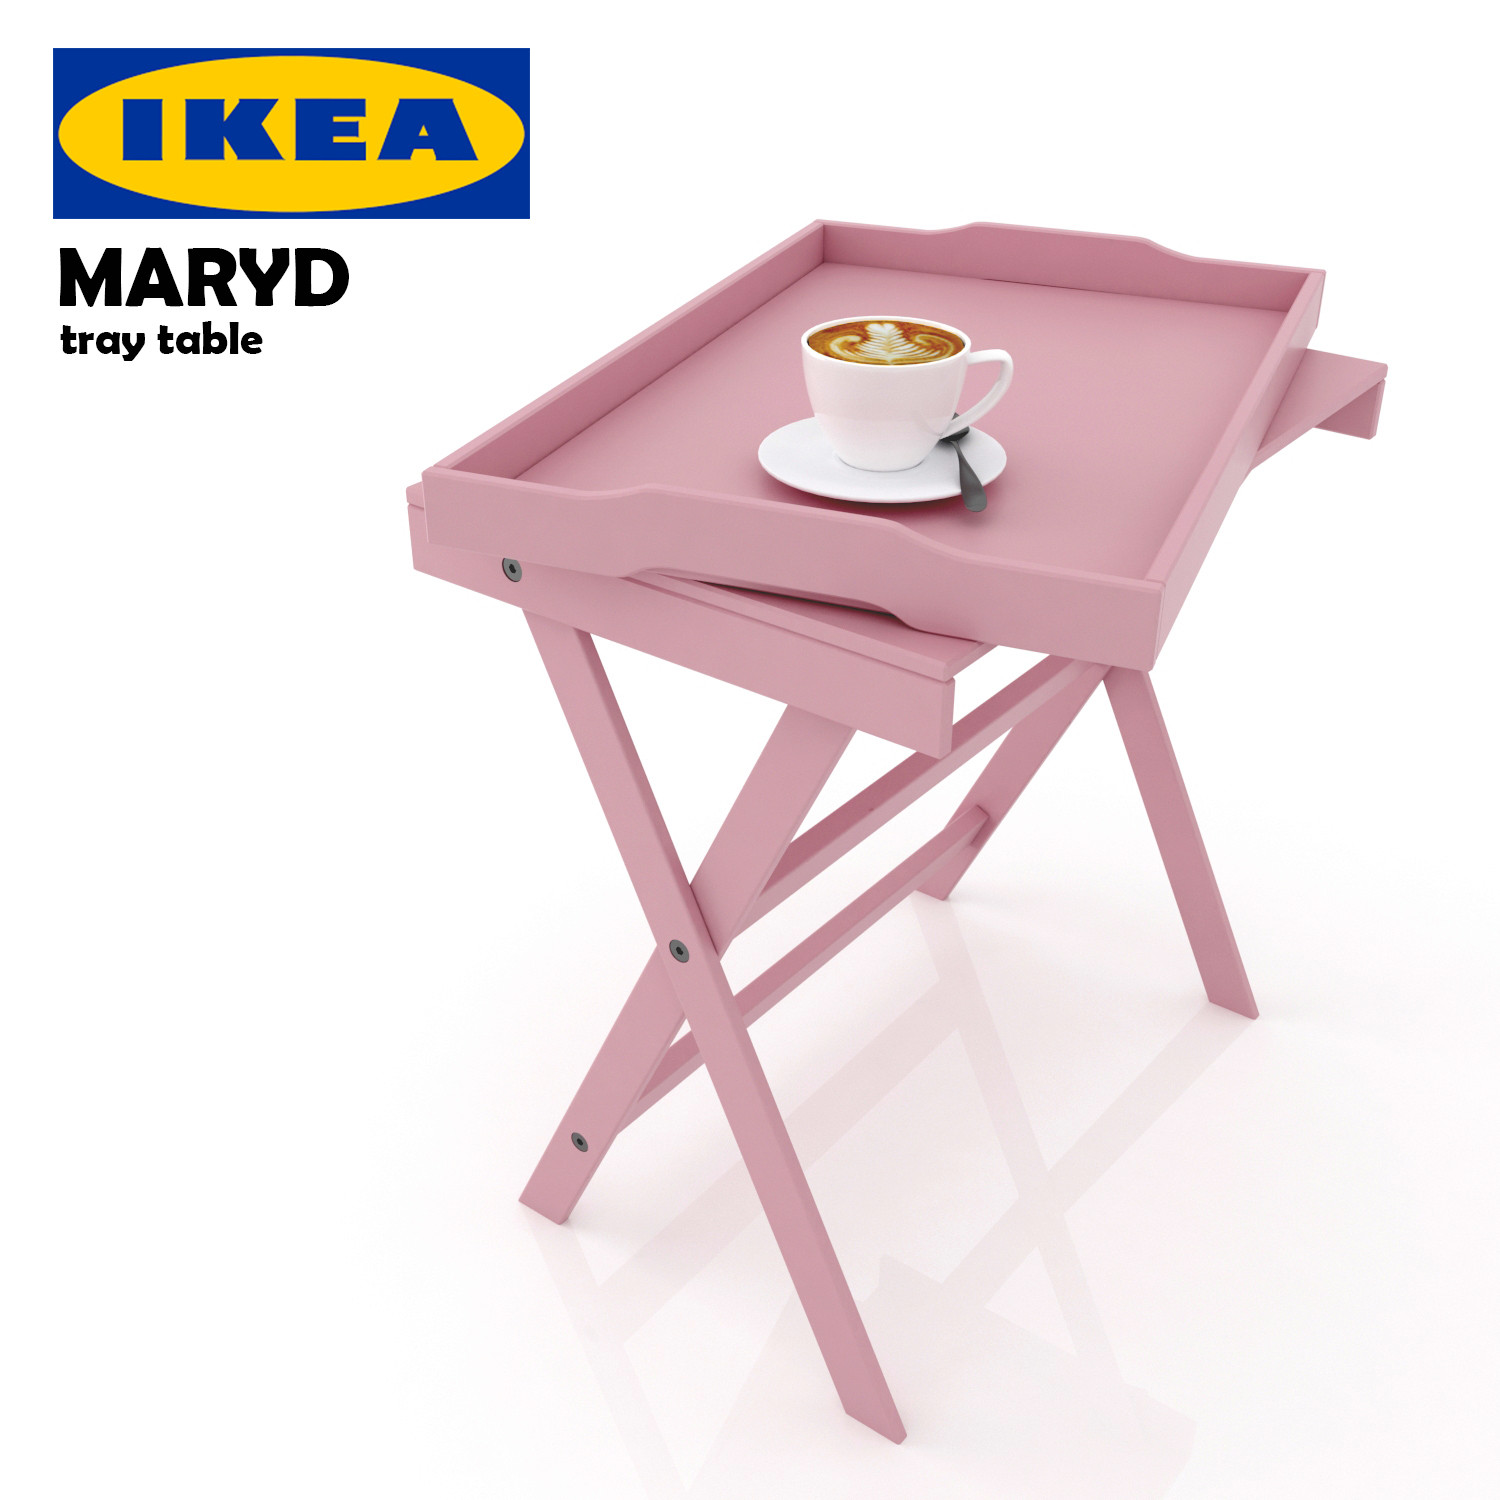 Ikea Maryd Tray 3d Model